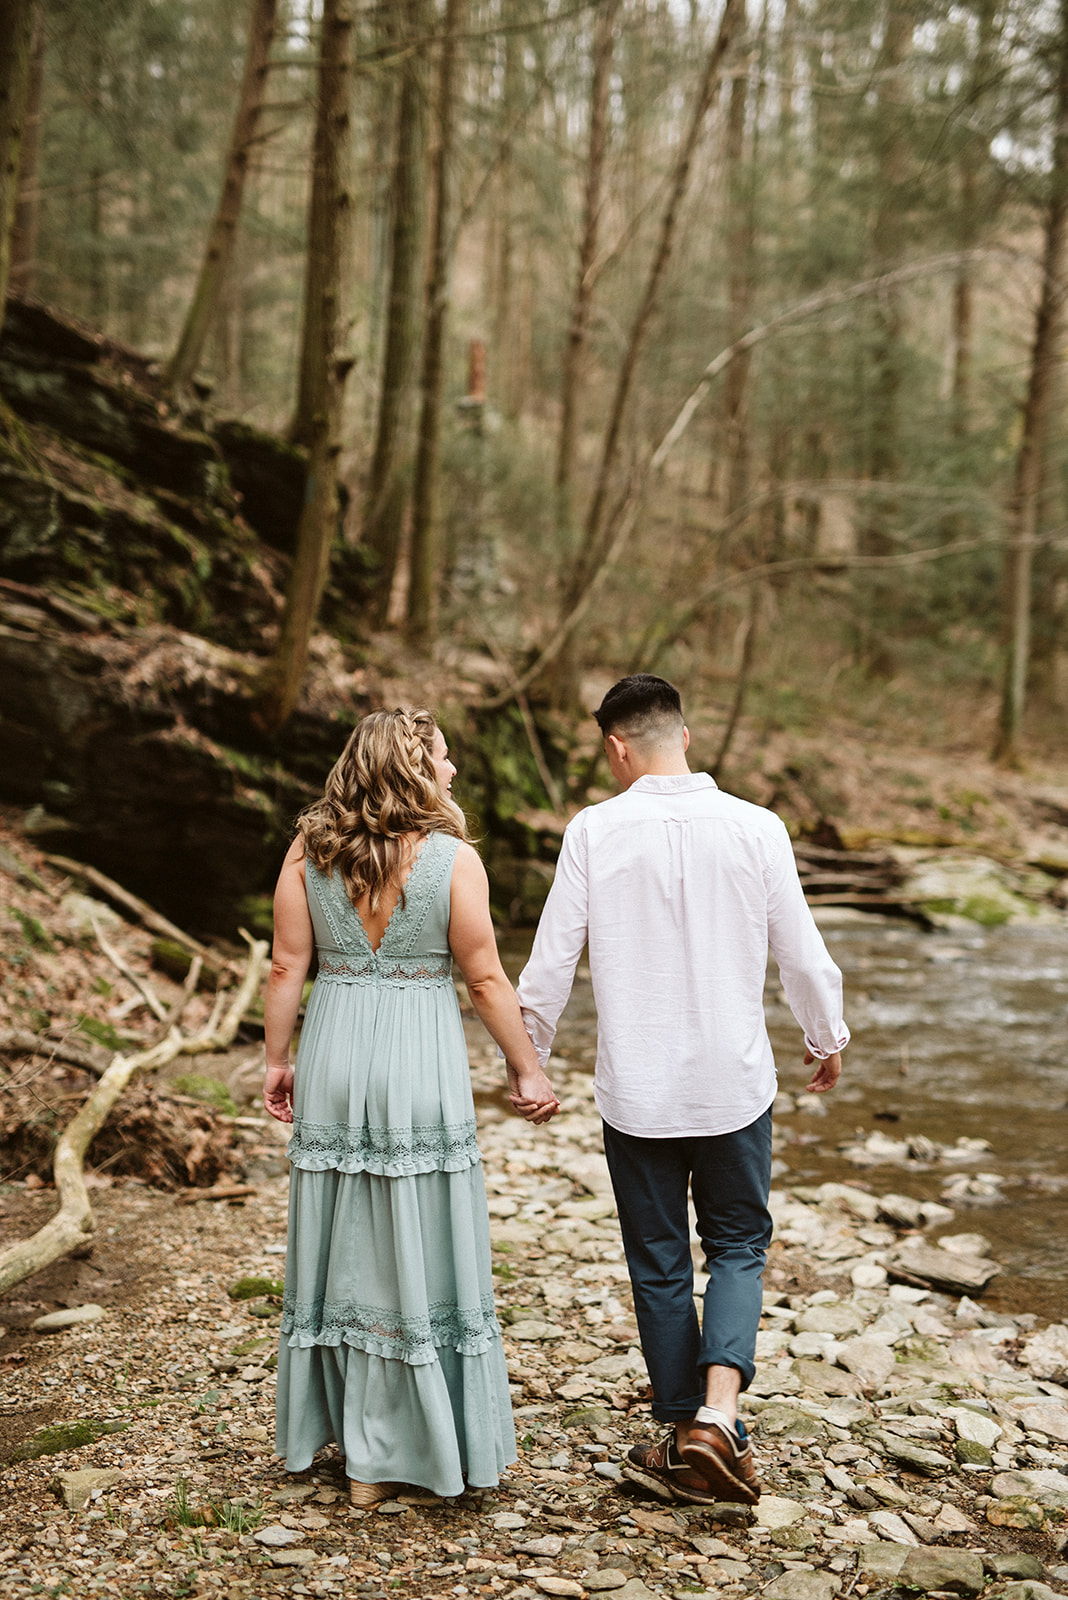 Elopement photographer in Lancaster, Pennsylvania.